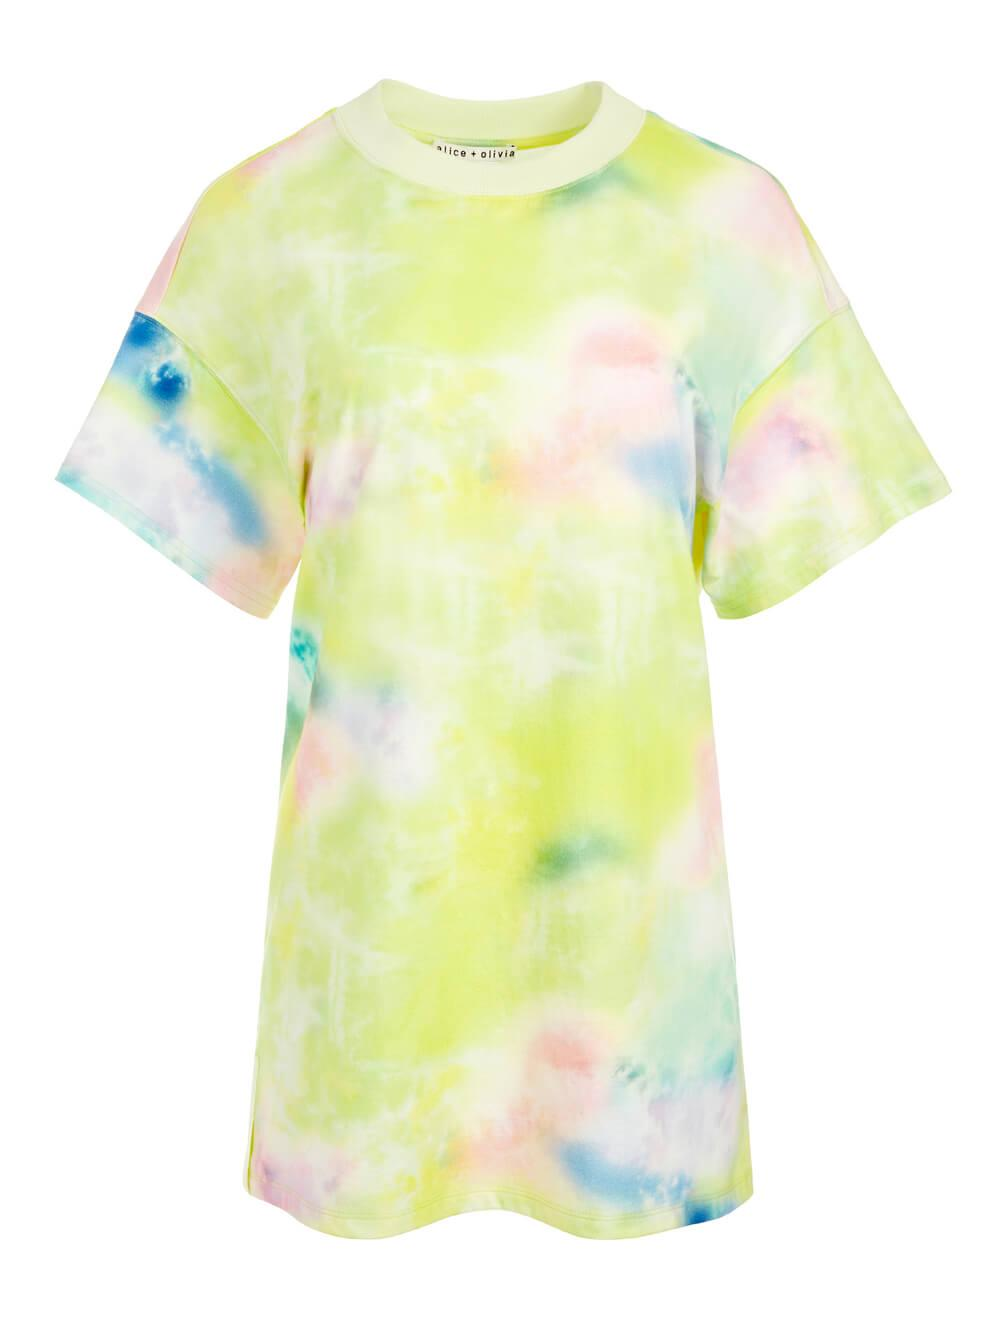 Garner Tie Dye Tee Shirt Dress